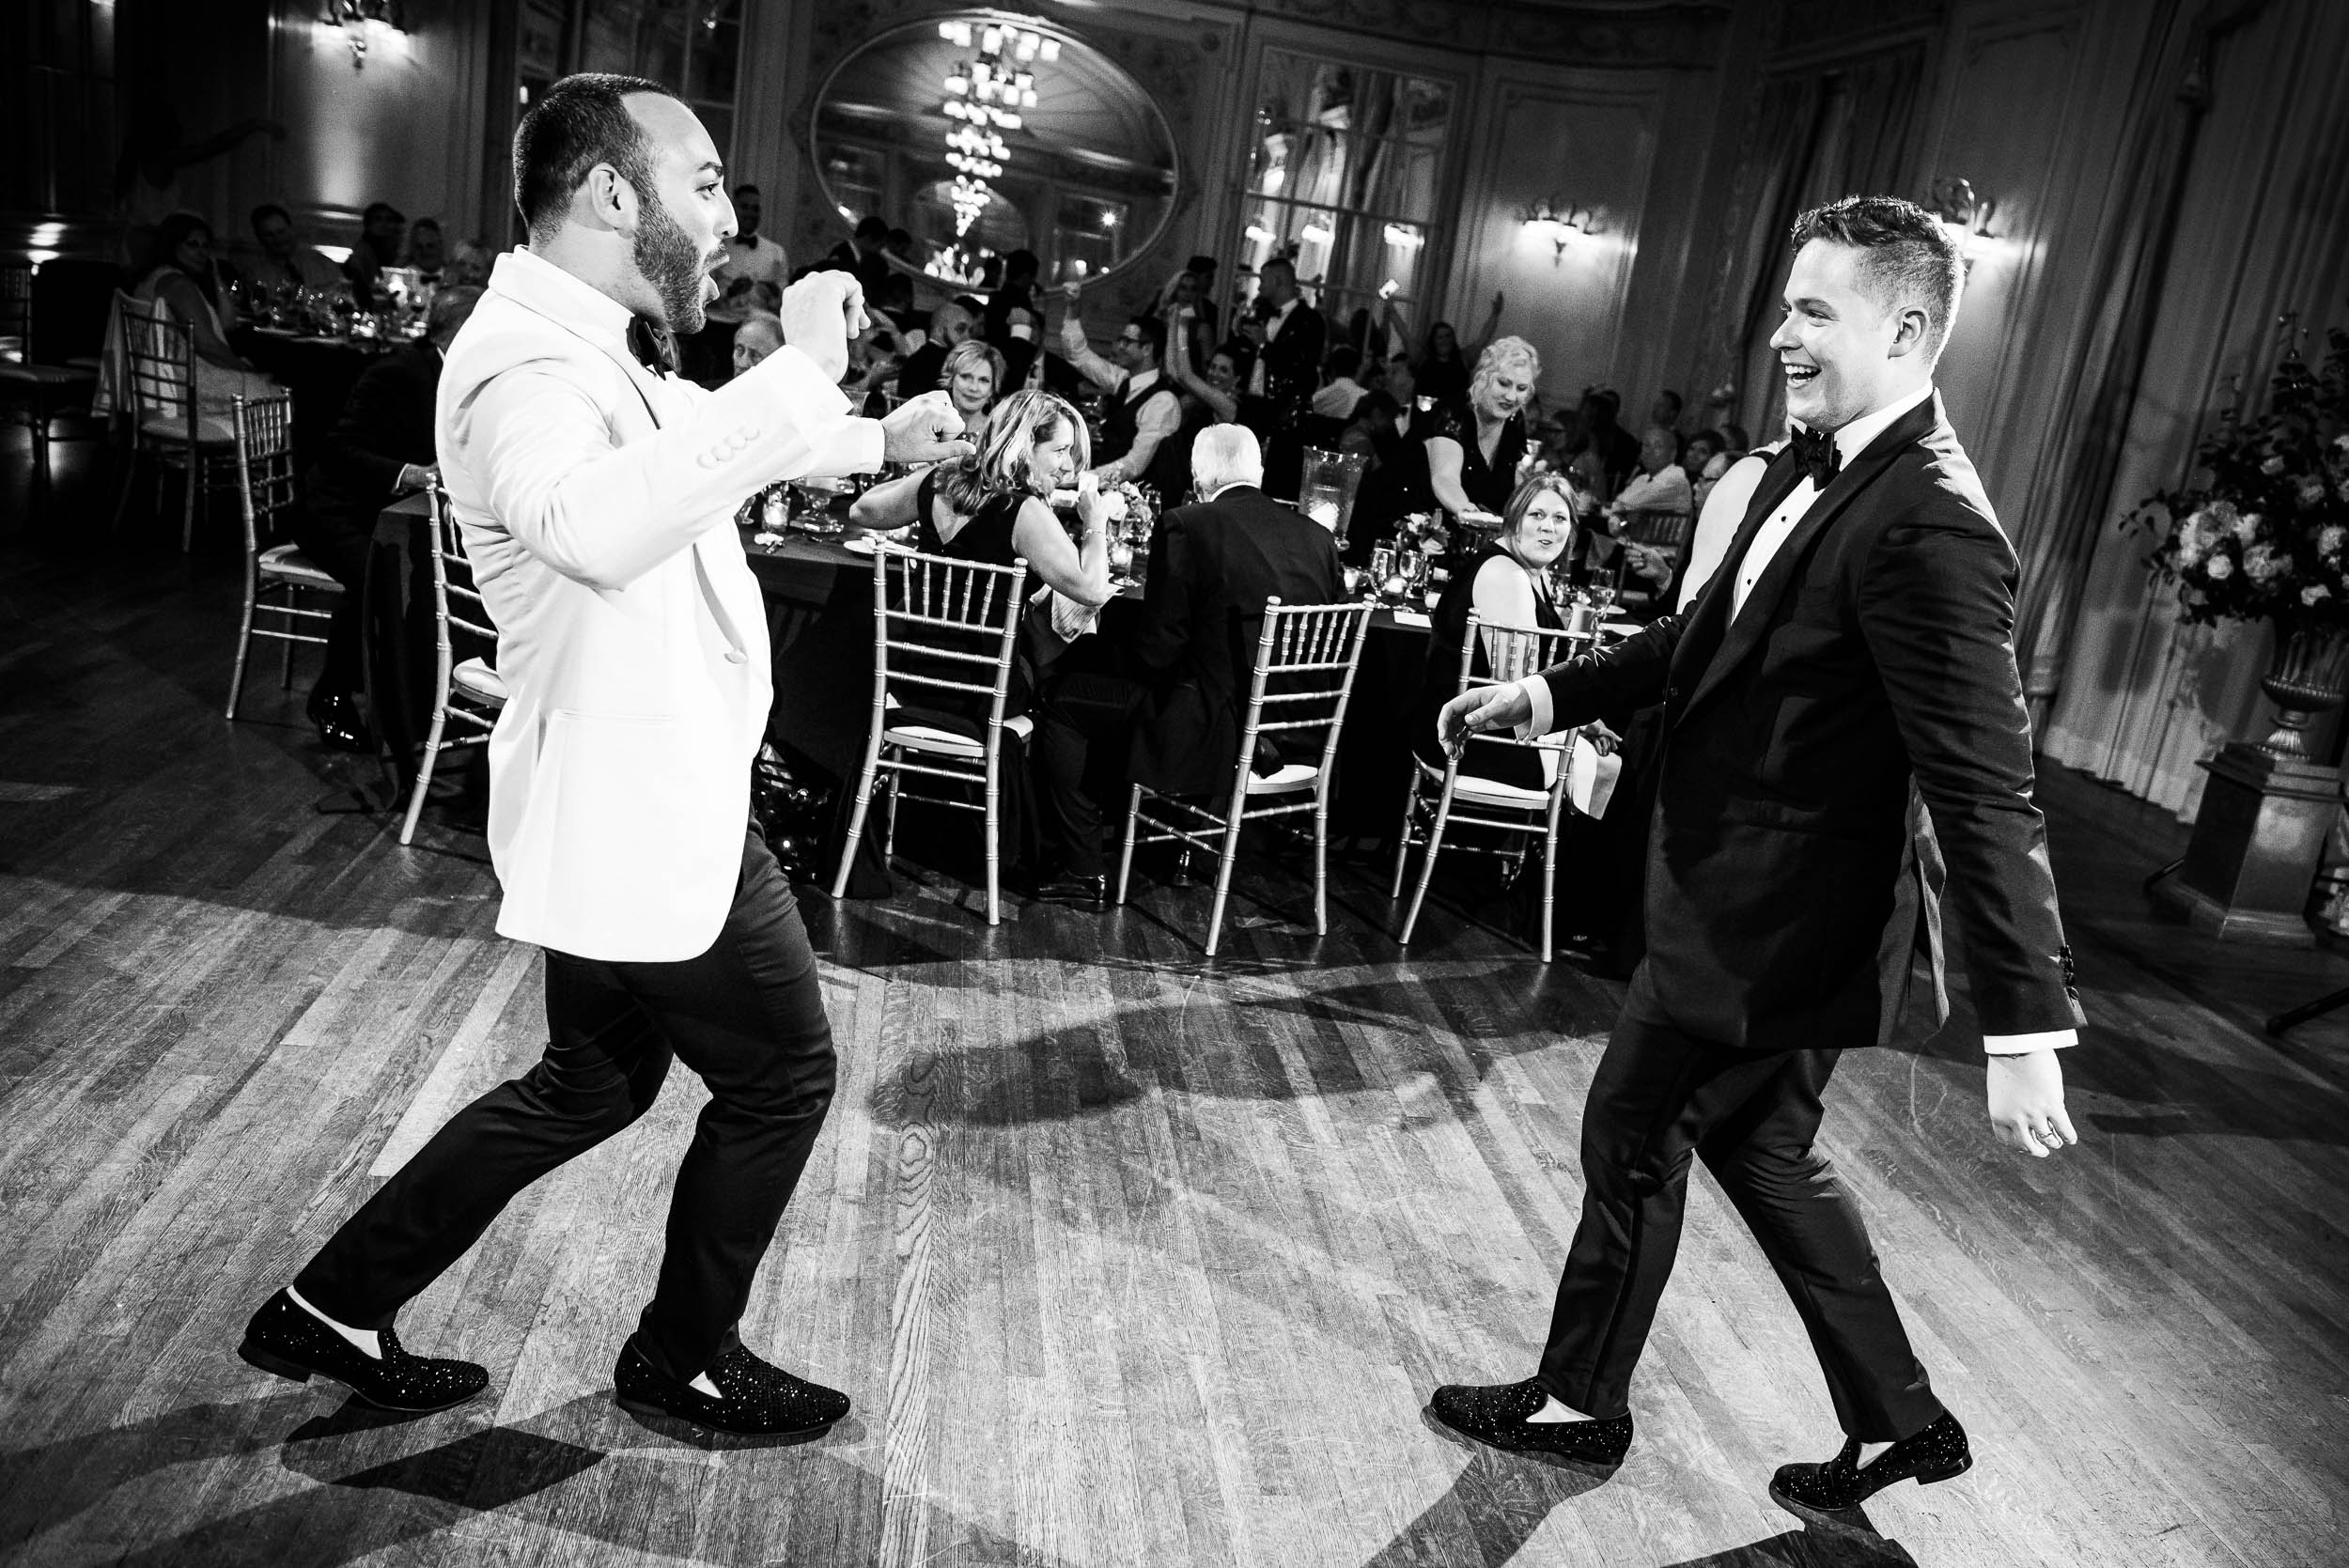 Grooms celebrating at luxurious fall wedding at the Chicago Symphony Center captured by J. Brown Photography. See more wedding ideas at jbrownphotography.com!